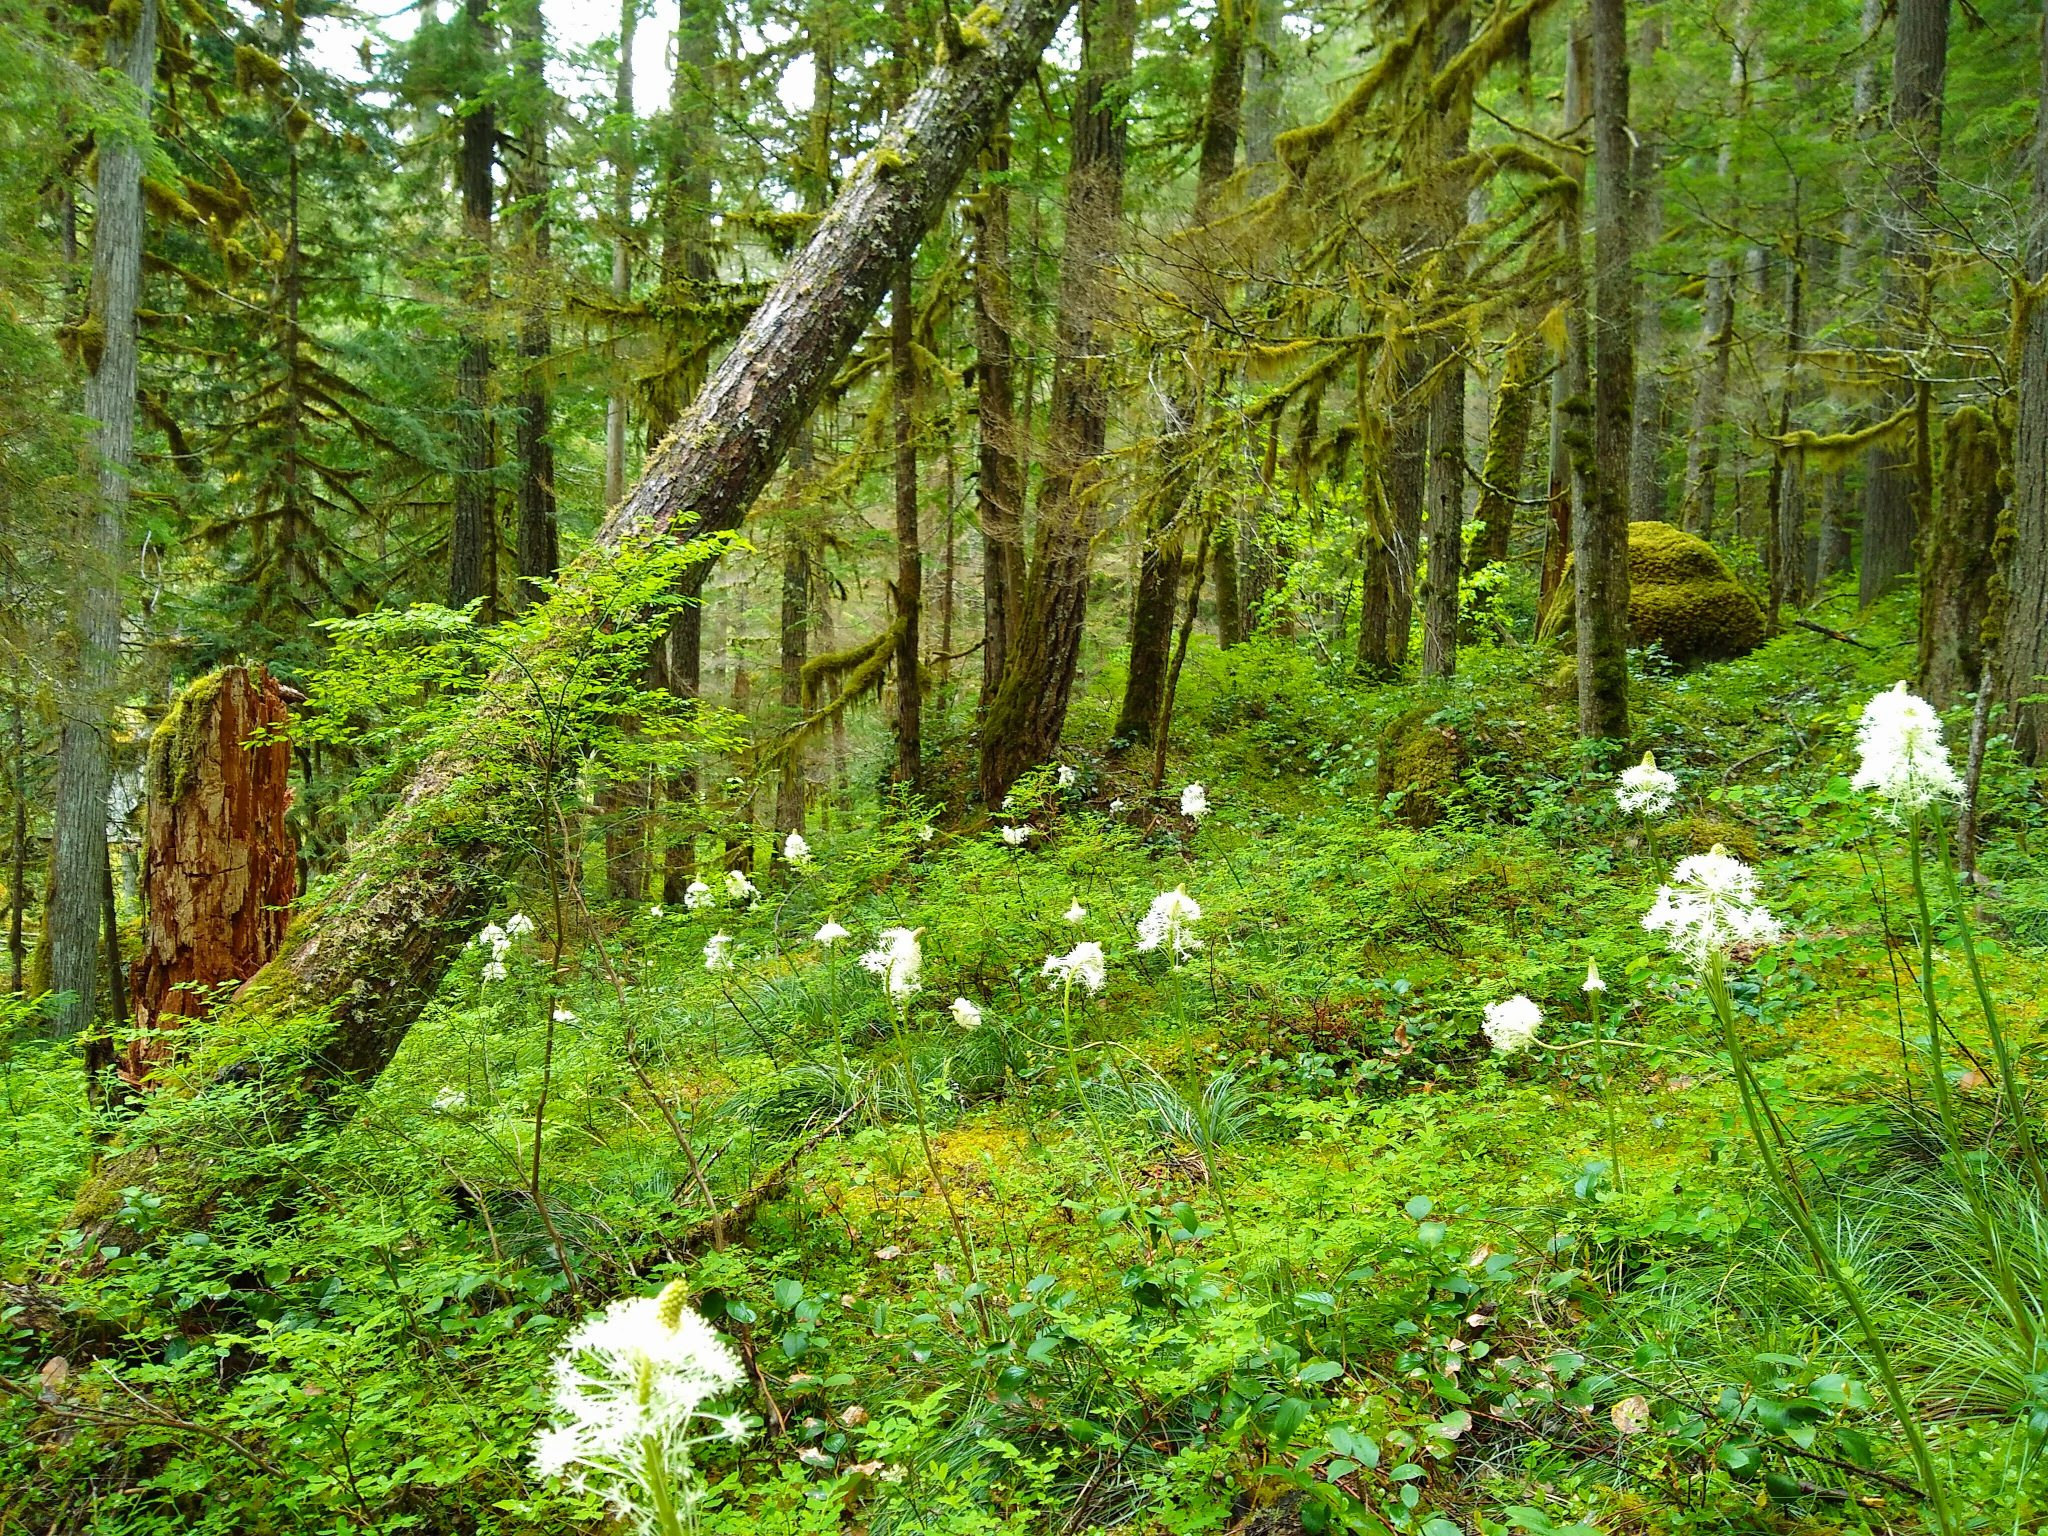 Forest with green undergrowth and scattered white wildflowers on tall stalks